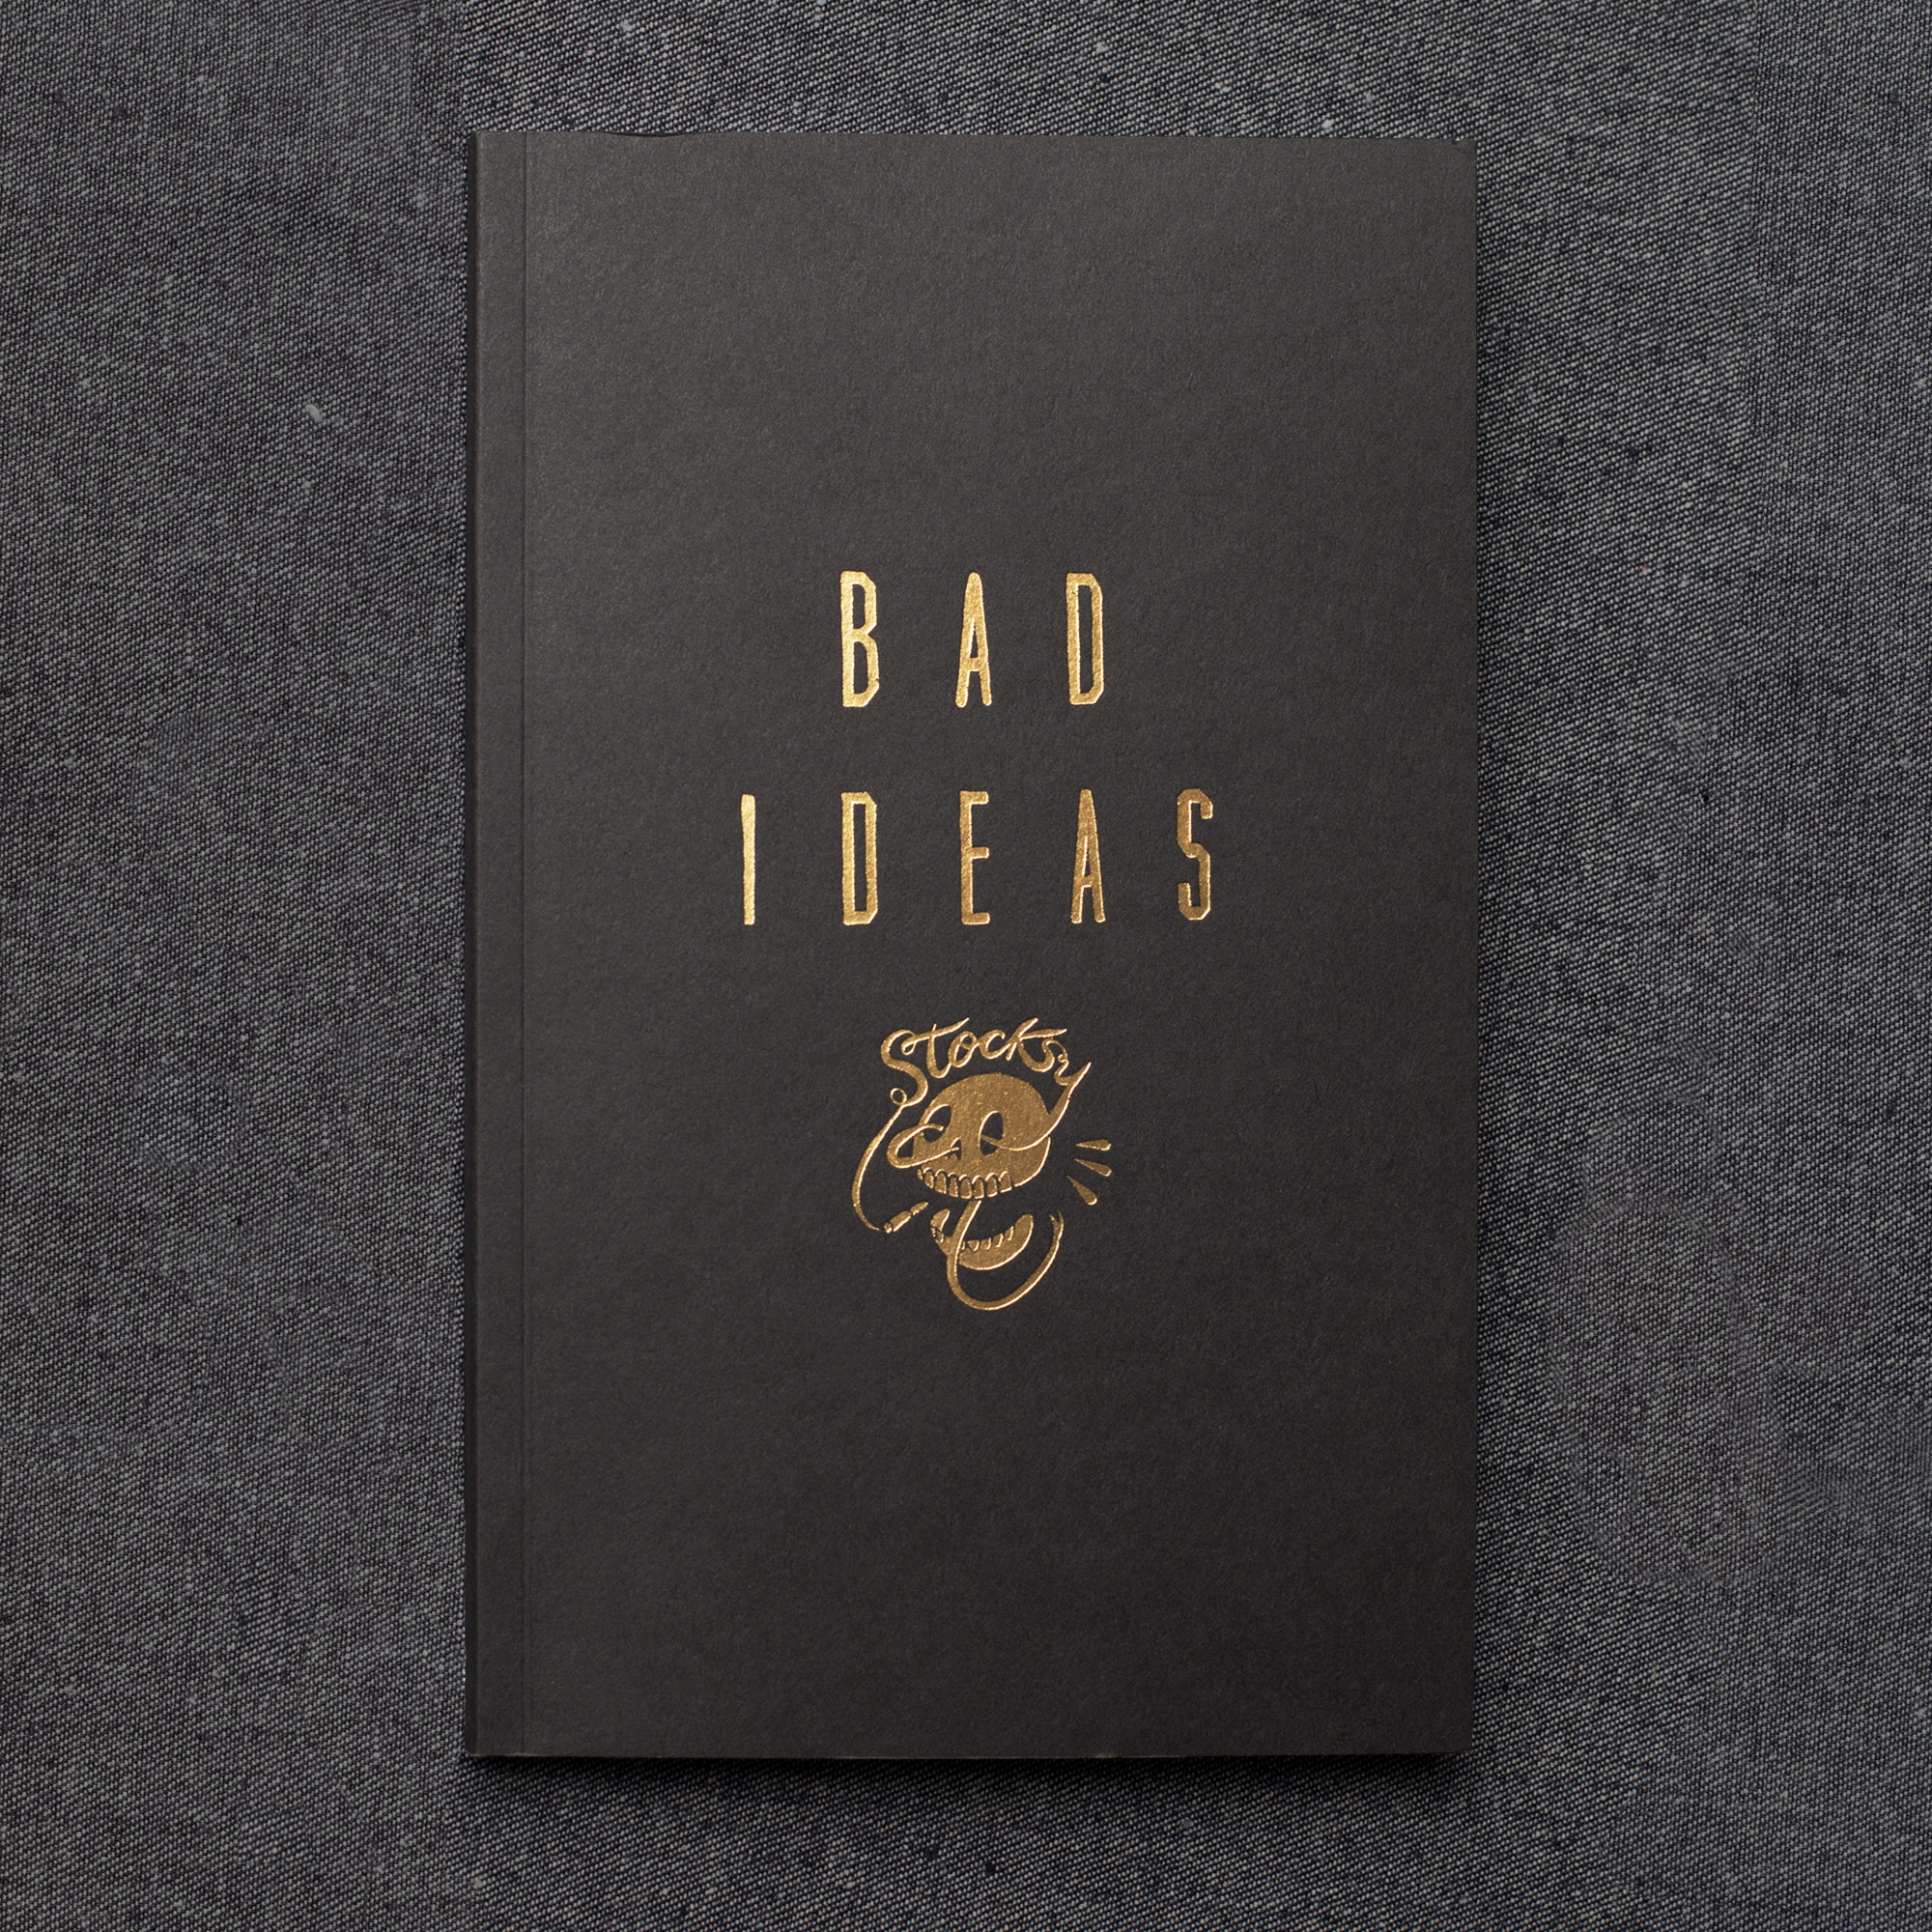 Bad-Ideas_1440x1440-8.jpg